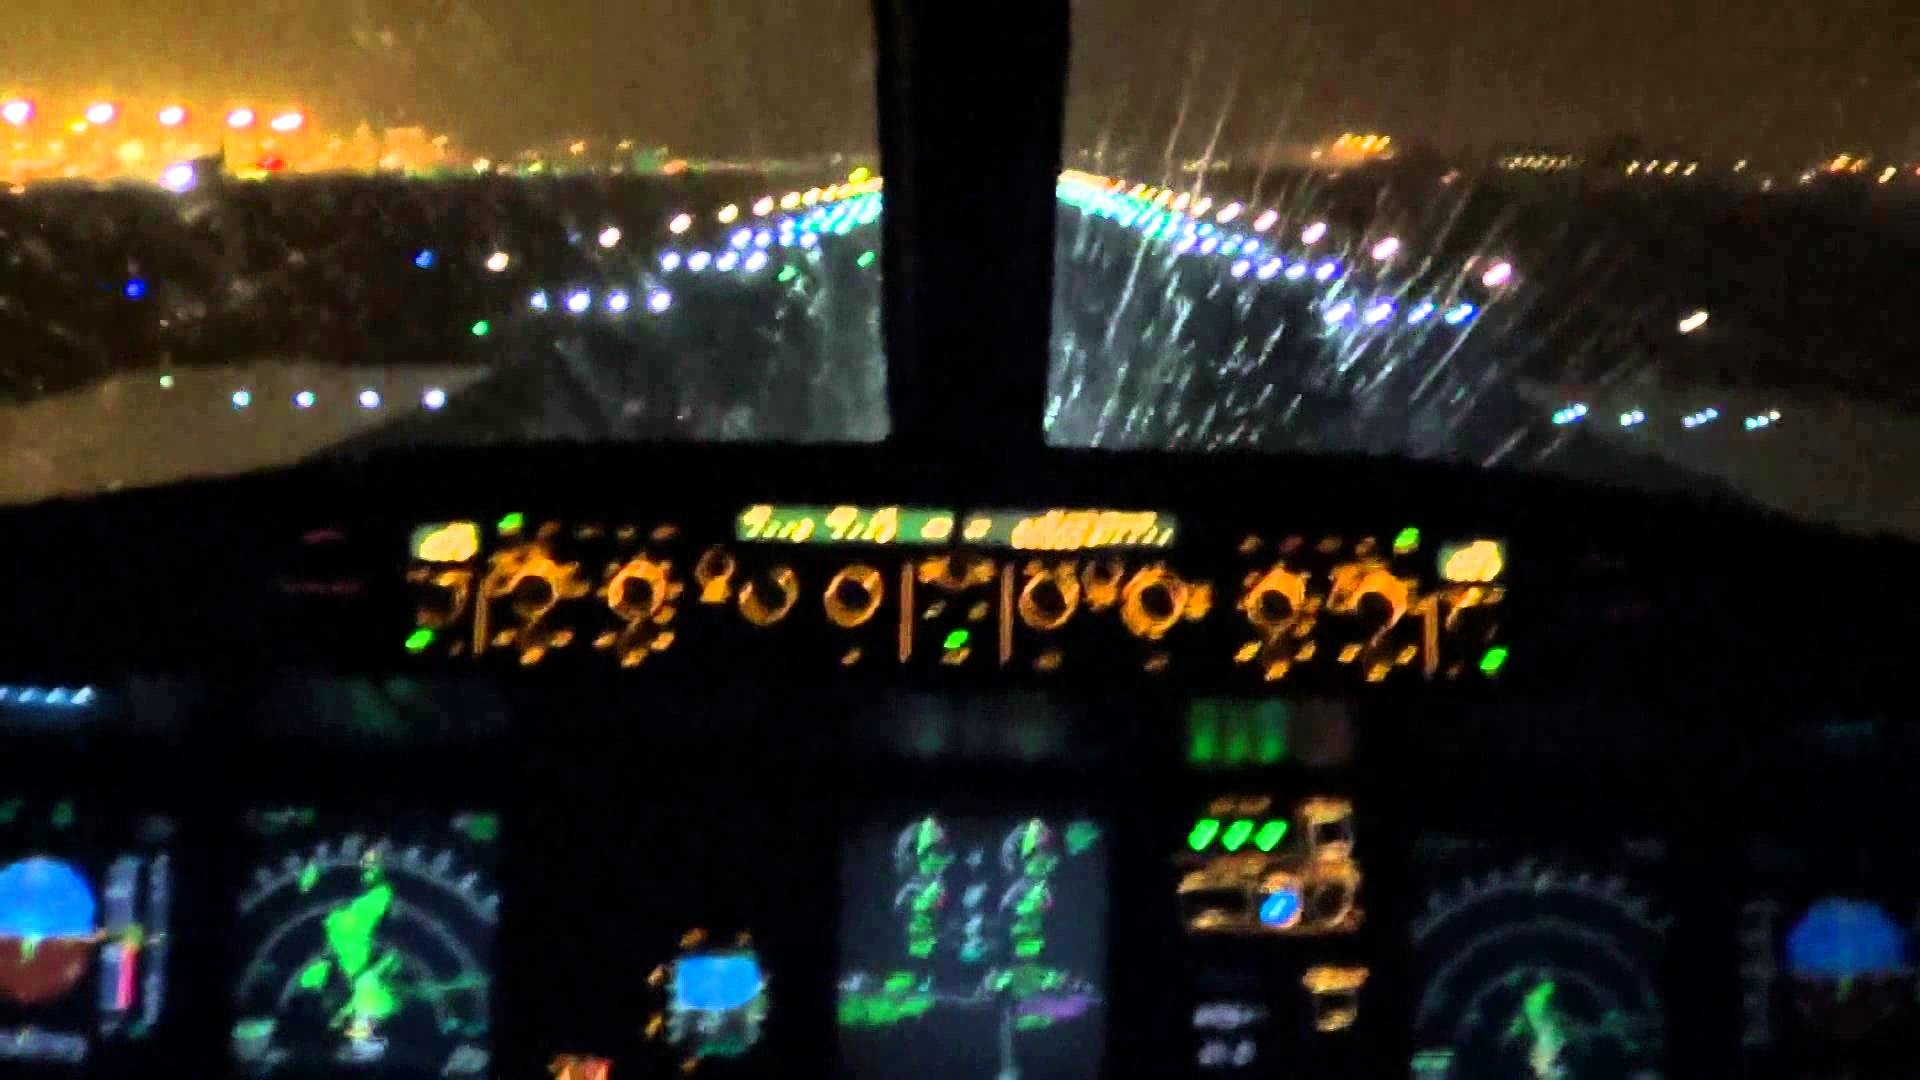 [Cockpit view] Brussels Airlines Airbus A319-111 rainy night takeoff at  Brussels – YouTube